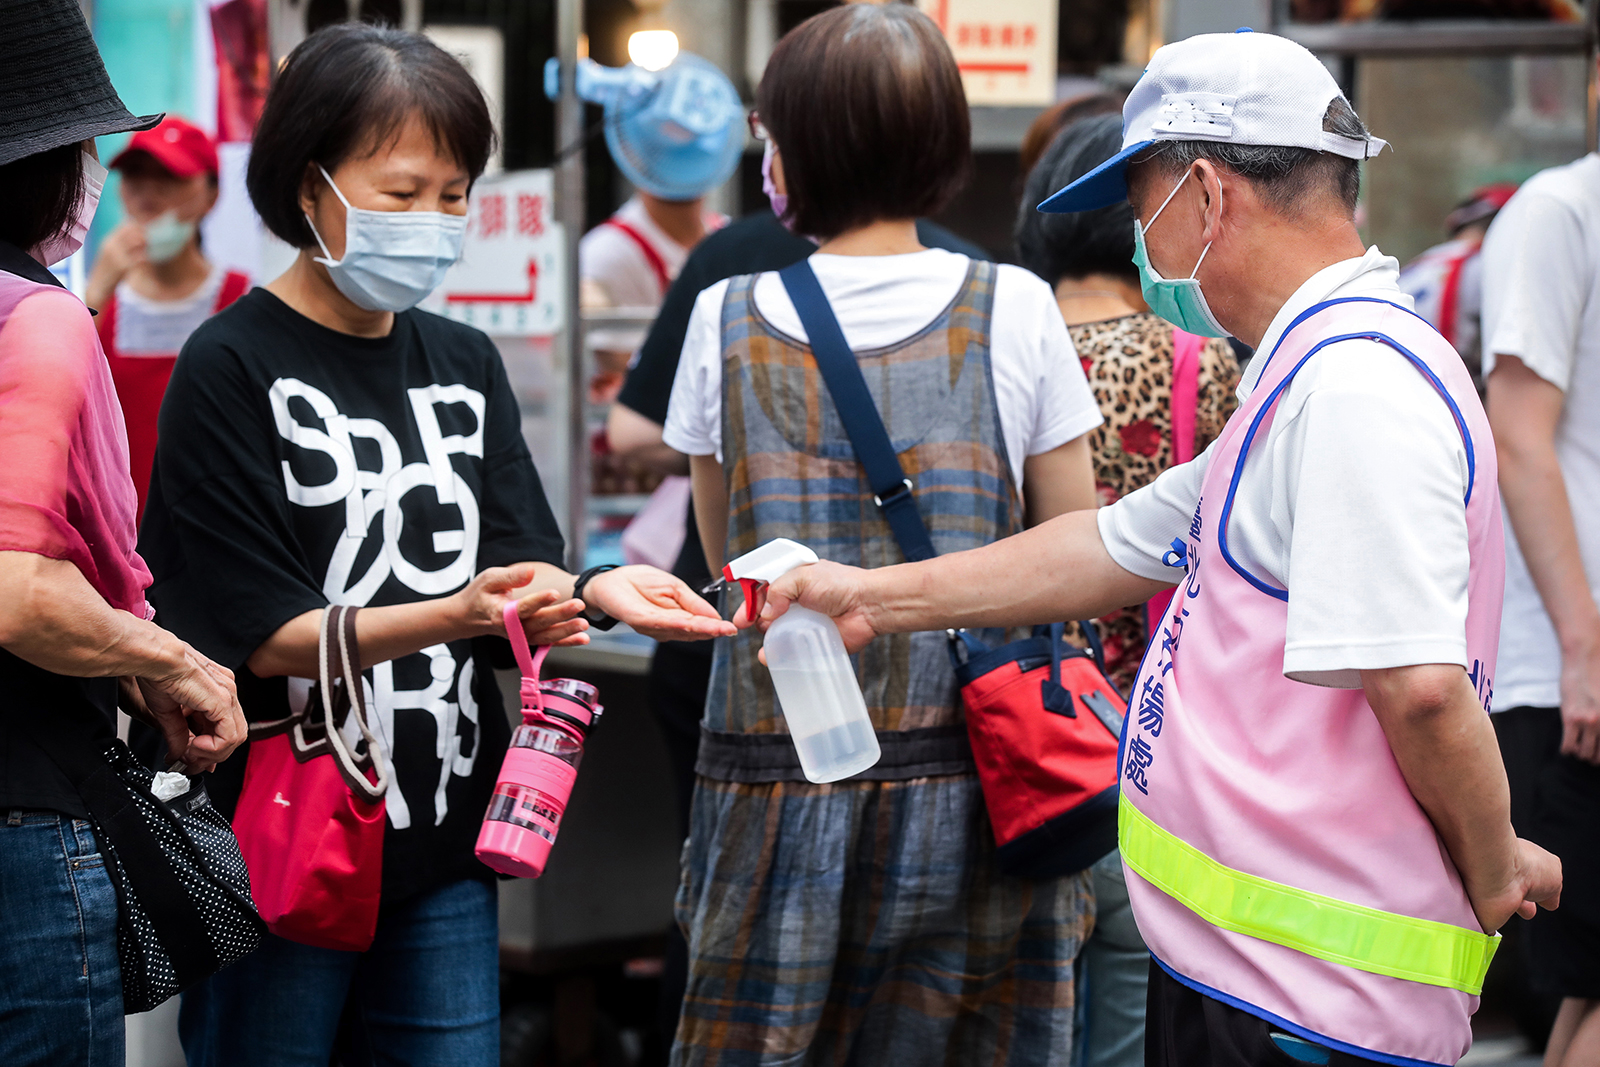 A municipal worker sprays sanitizer into a woman's hands at the entrance to the Ningxia Night Market in Taipei, Taiwan, on July 30.